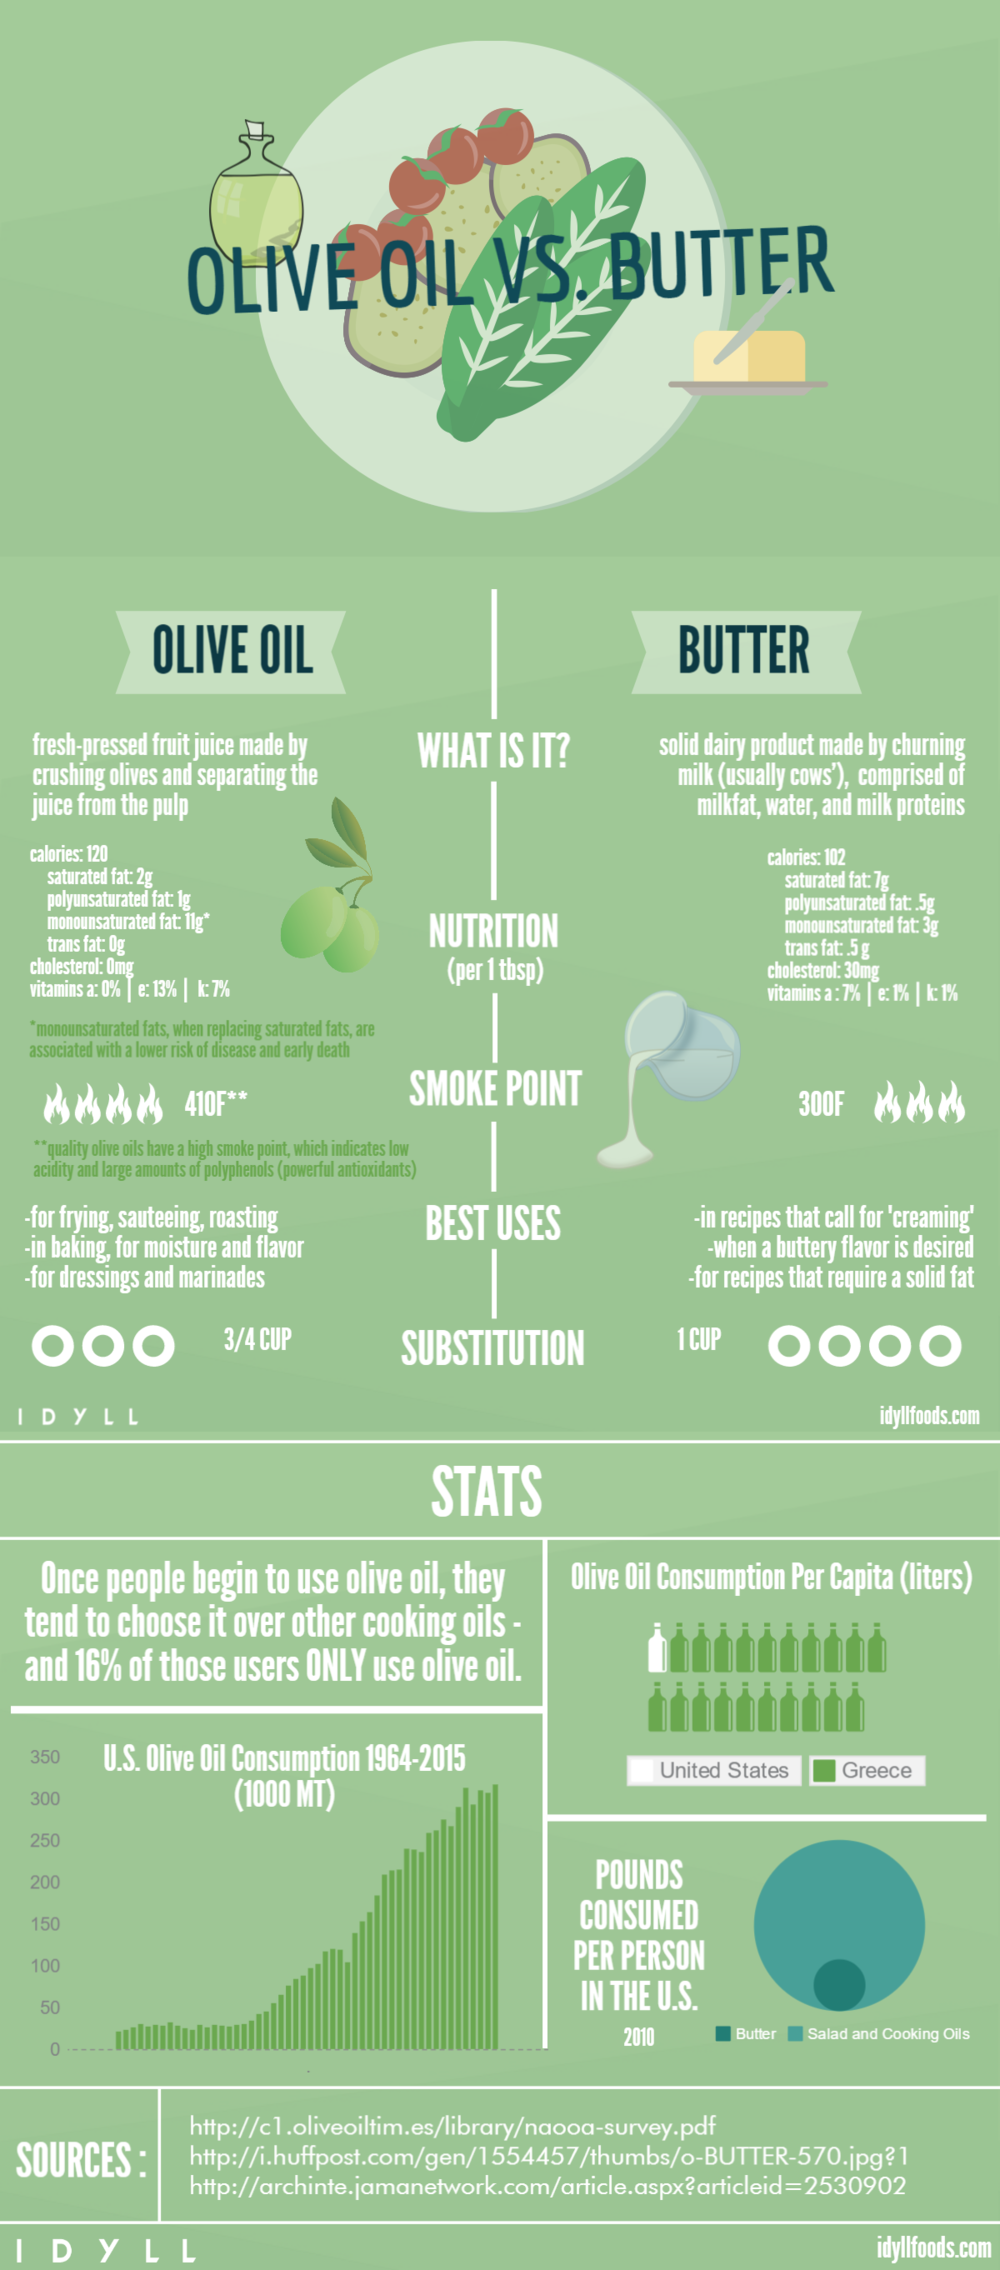 idyll-olive-oil-versus-butter-infographic